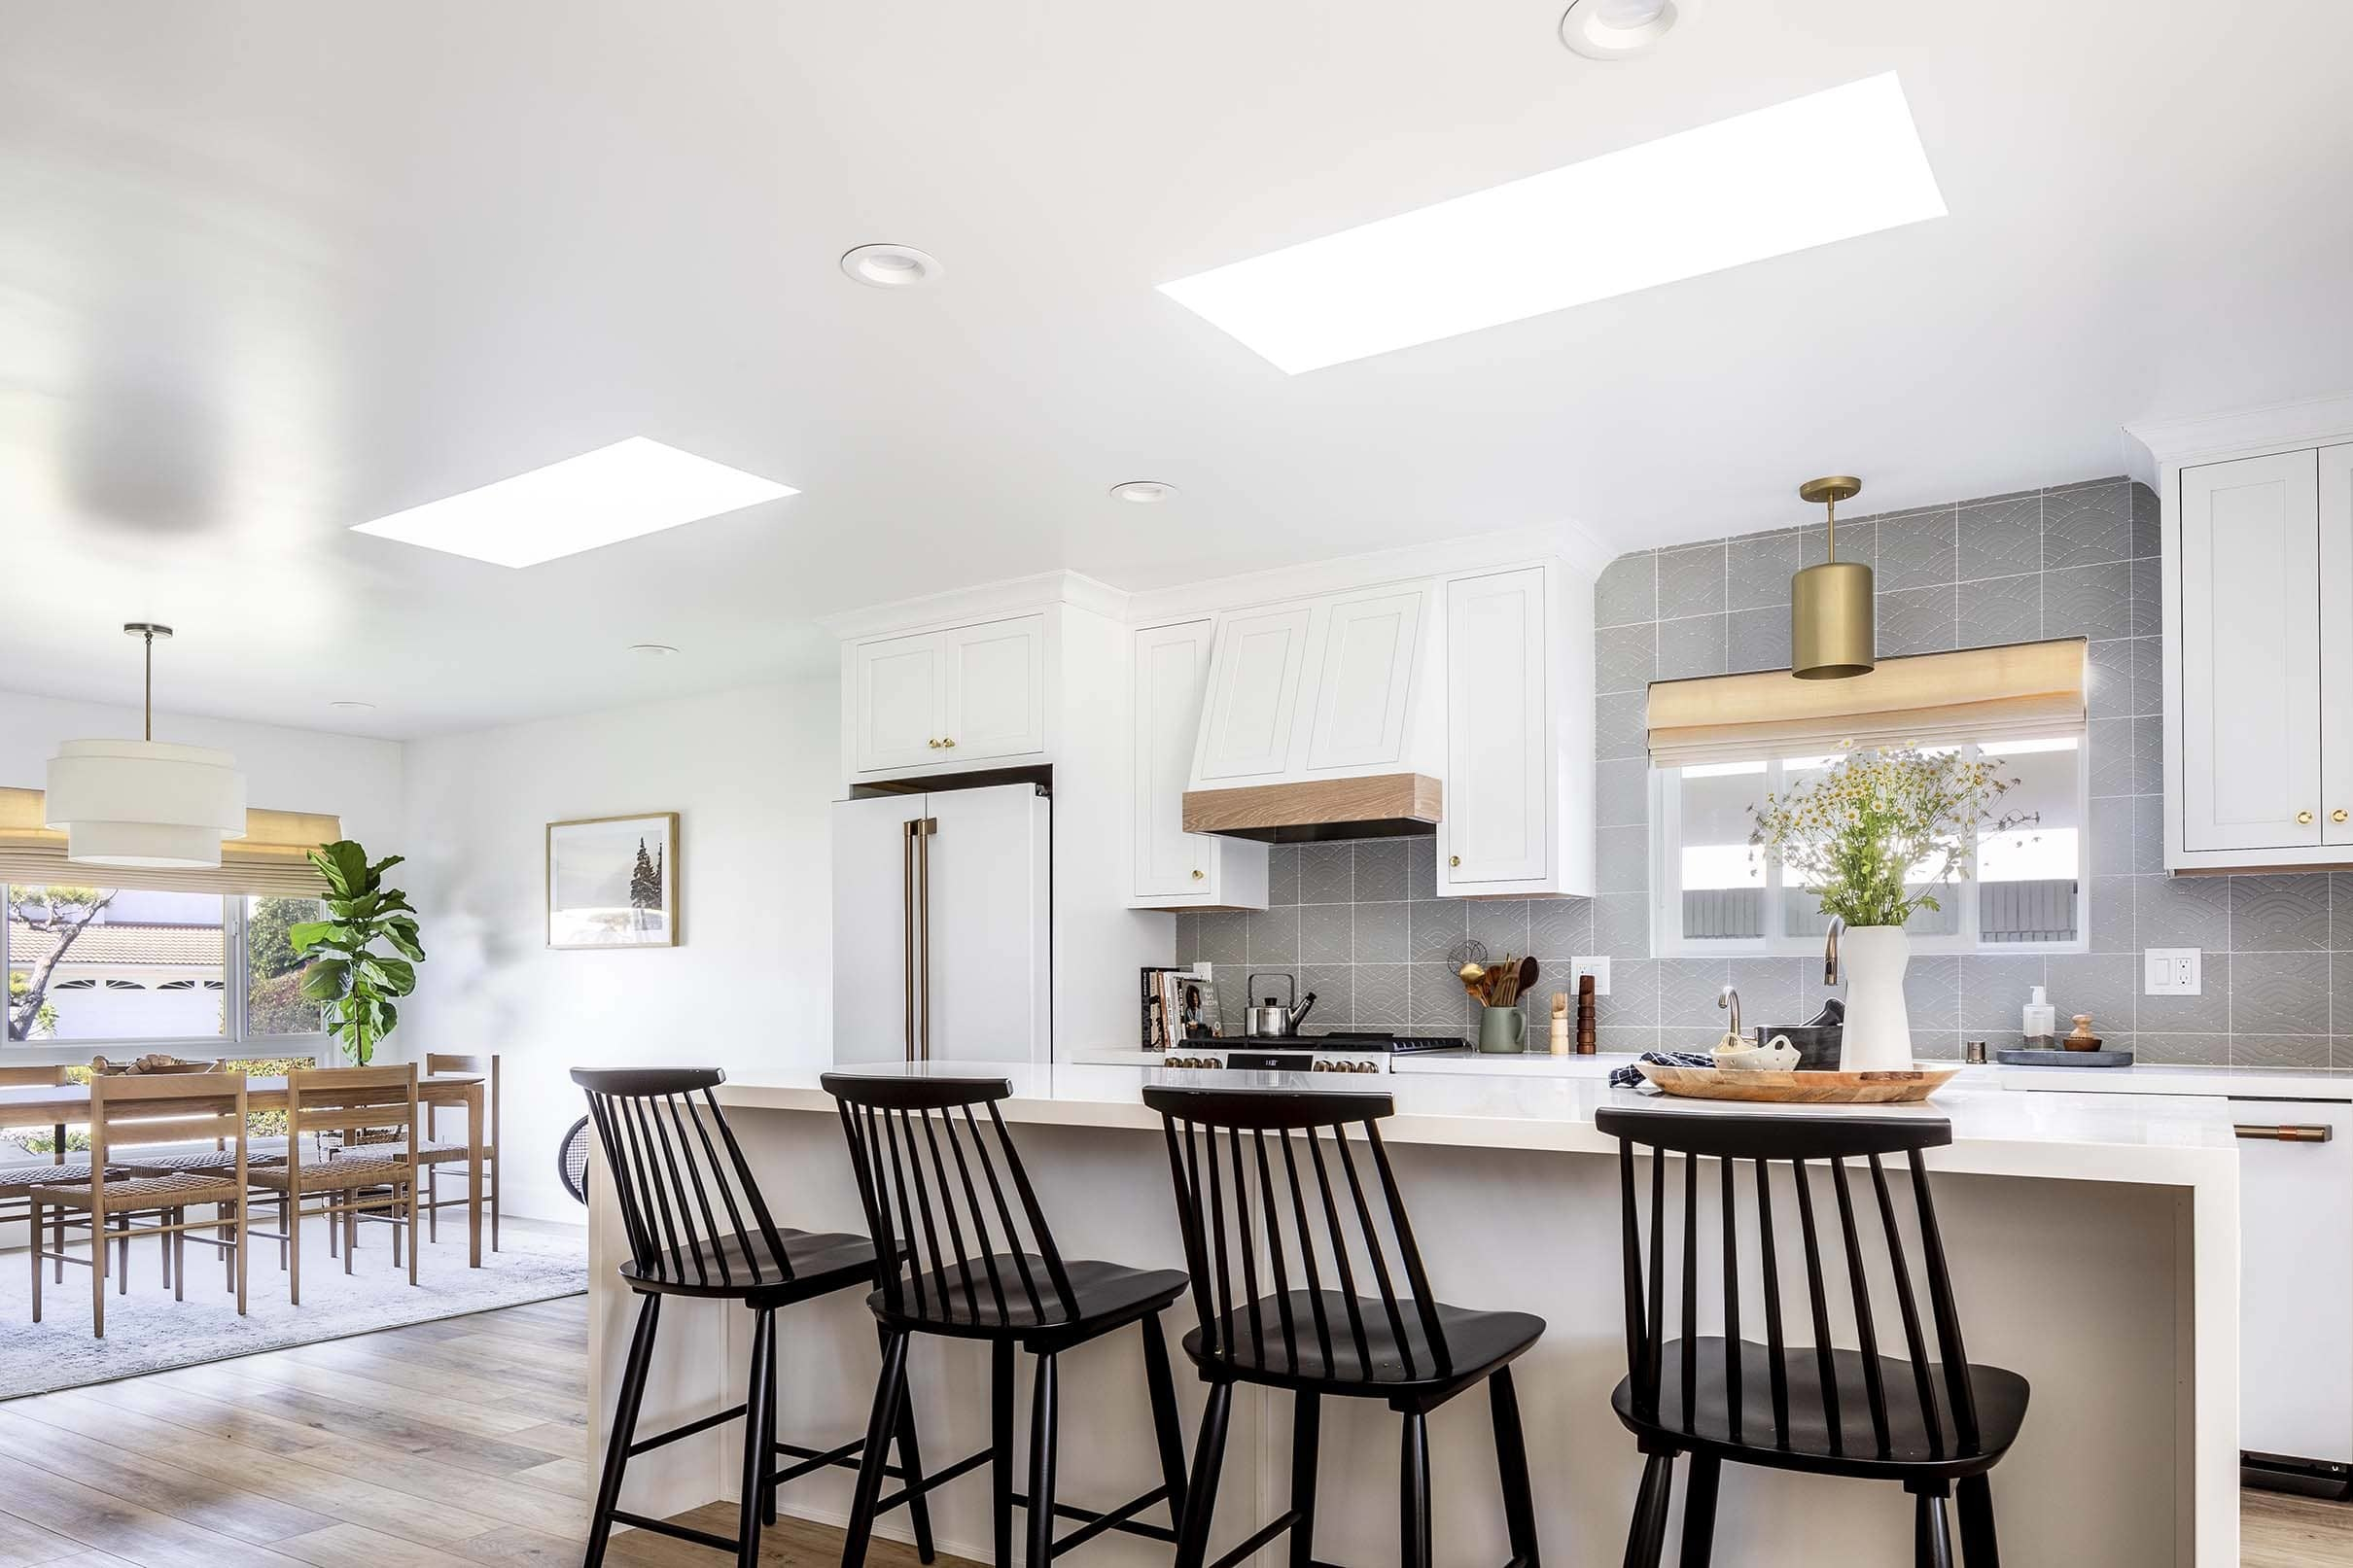 Two skylights brighten an all-white kitchen that includes white appliances, a grey backsplash, white waterfall island and black Shaker-style counter chairs